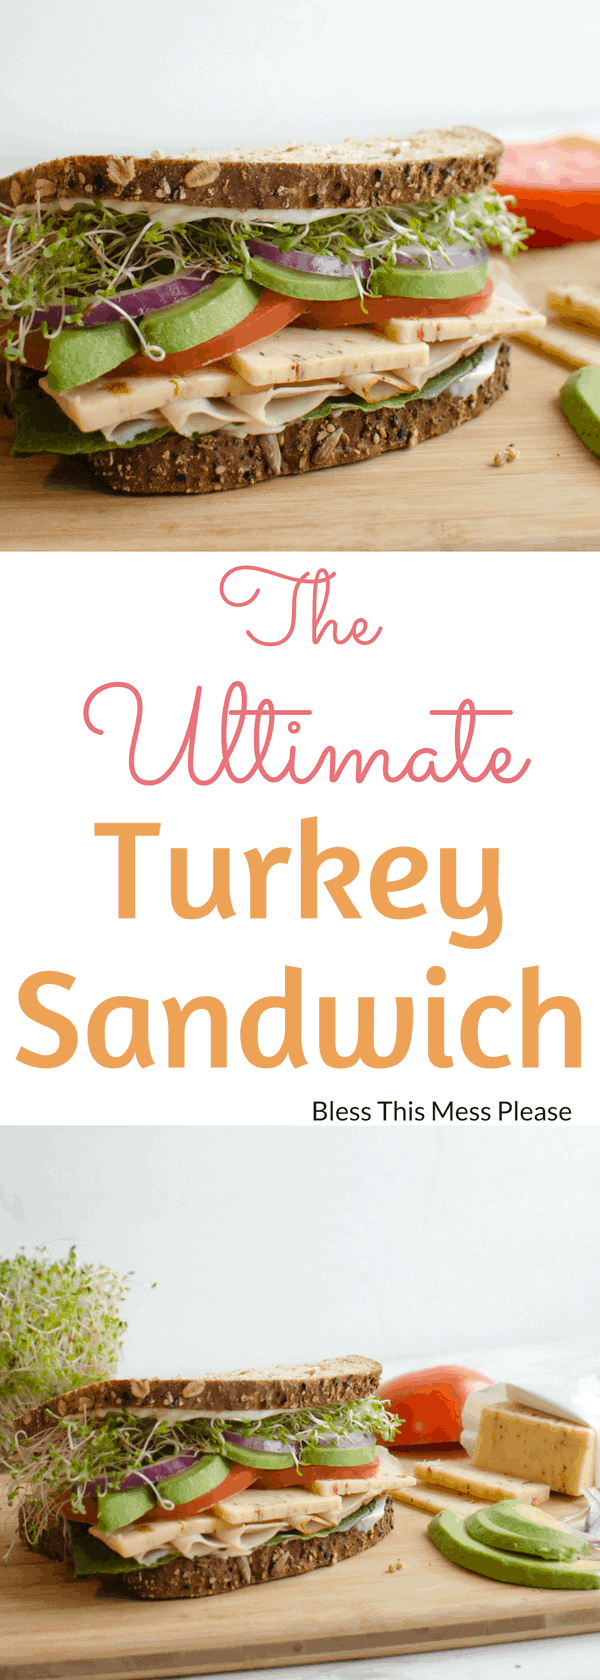 The Ultimate Turkey Sandwich